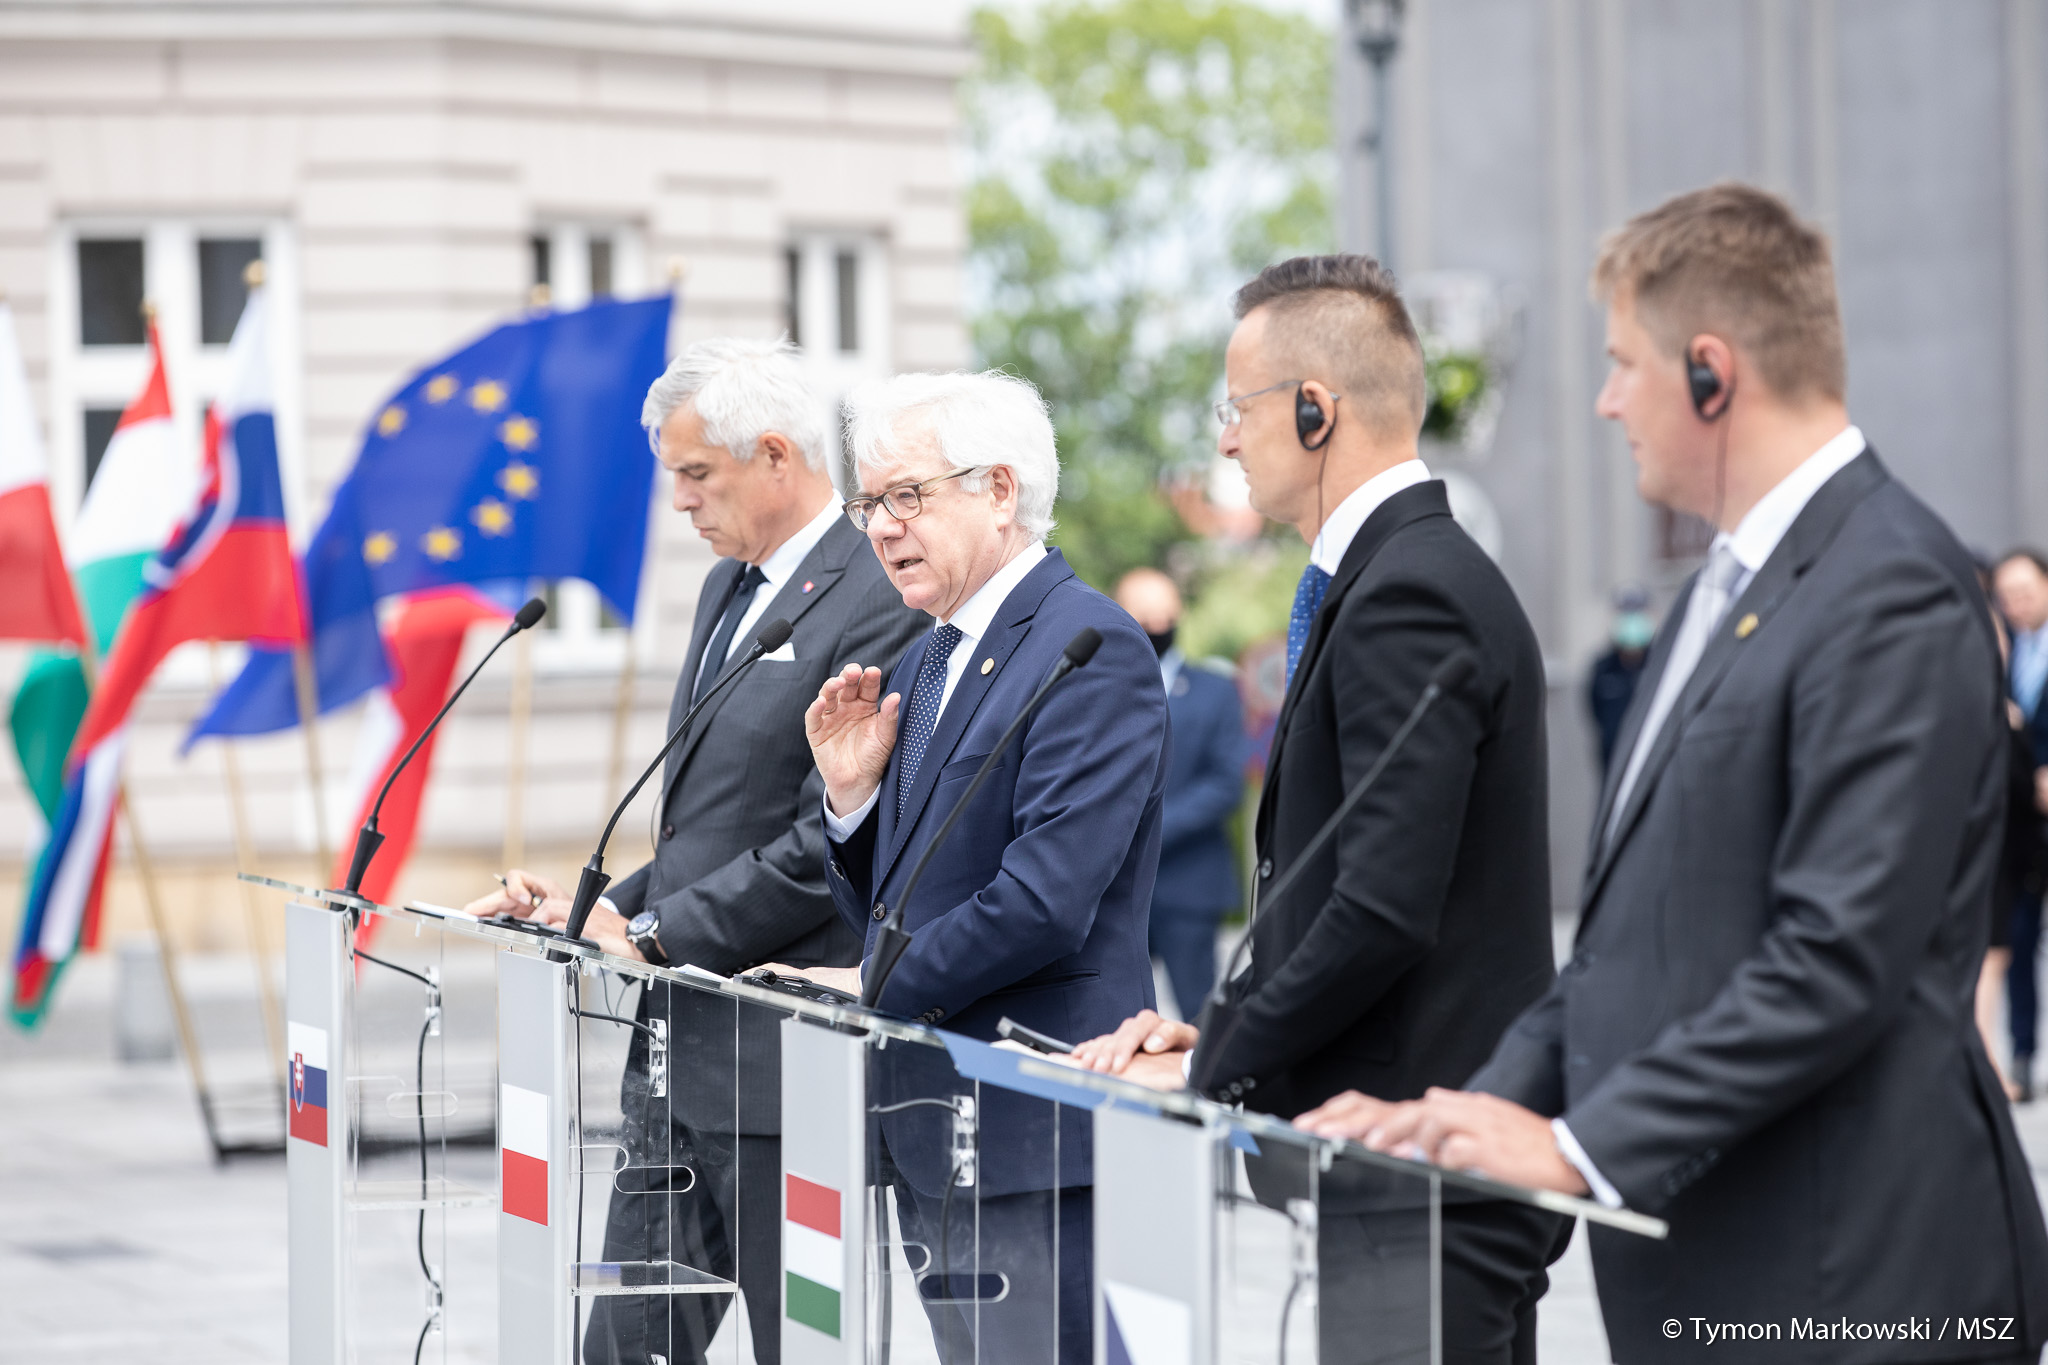 WI Daily News – V4 Foreign Ministers met in Wadowice